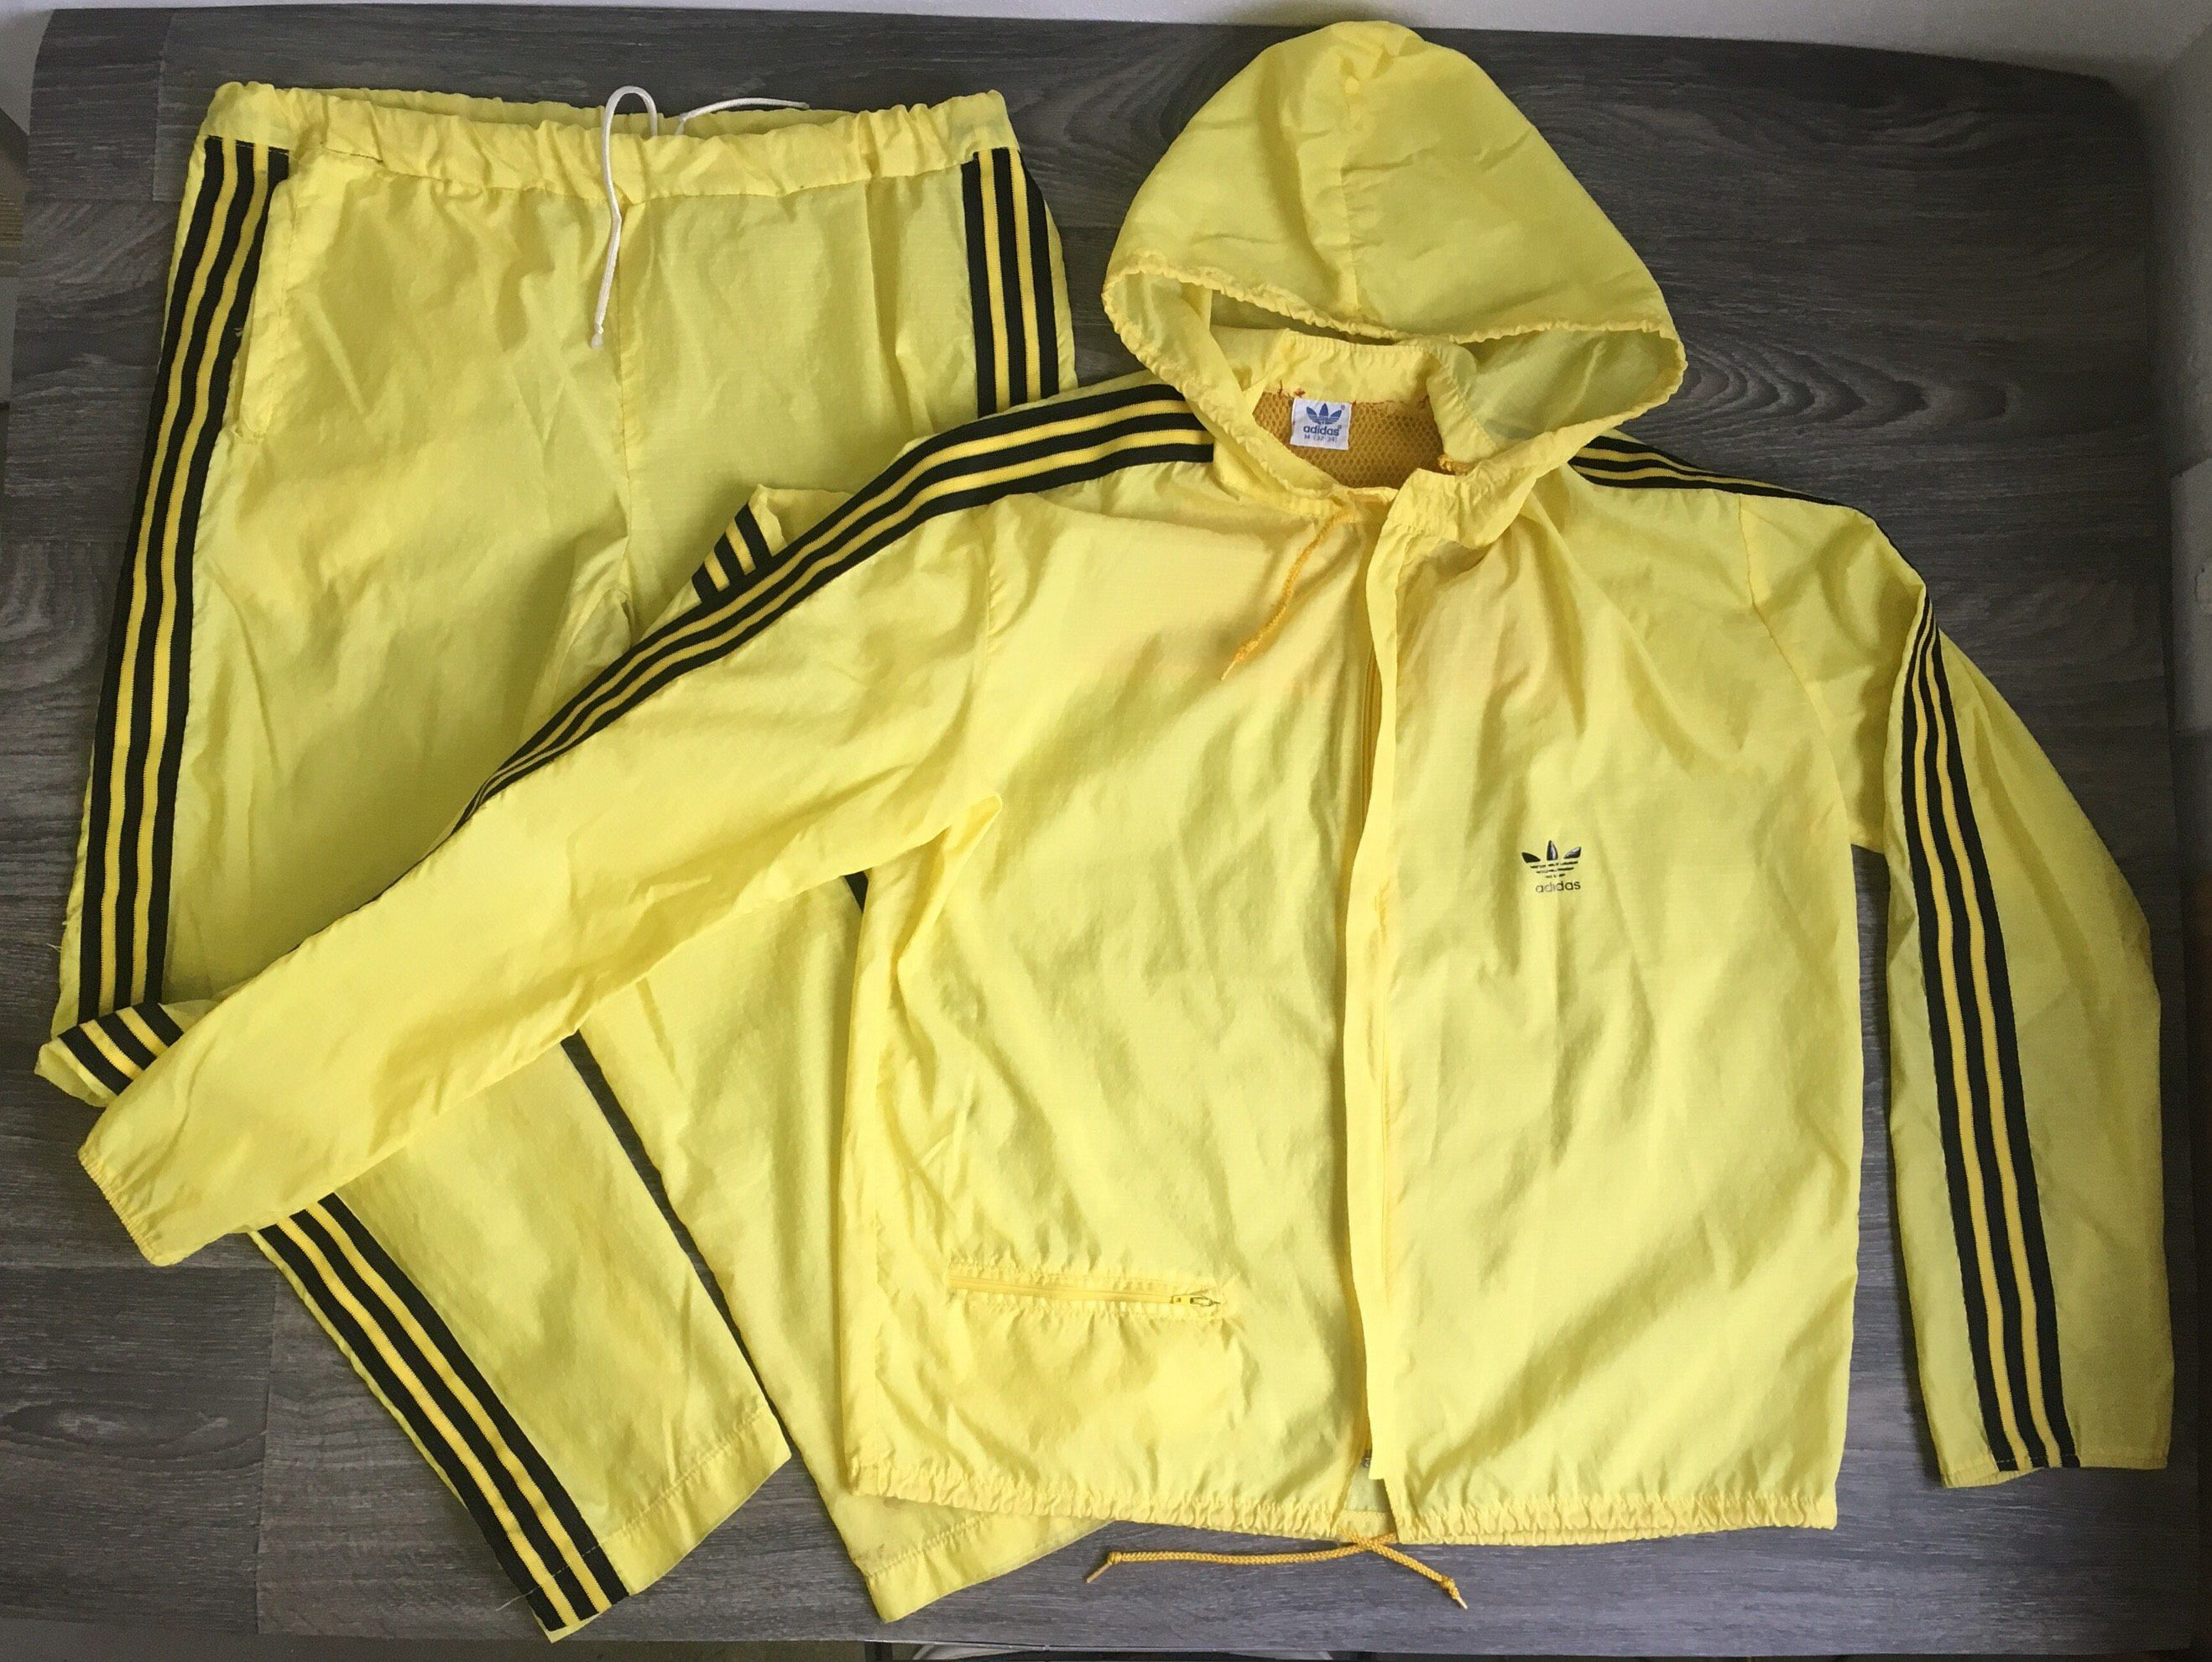 2c69bd7fc21a Adidas 80s Vintage Track Suit Trefoil 3 Stripe Running Yellow Athletic  Dance Nylon Sport Warm Up Size Medium Kill Bill Workout Clothes by  sweetVTGtshirt on ...